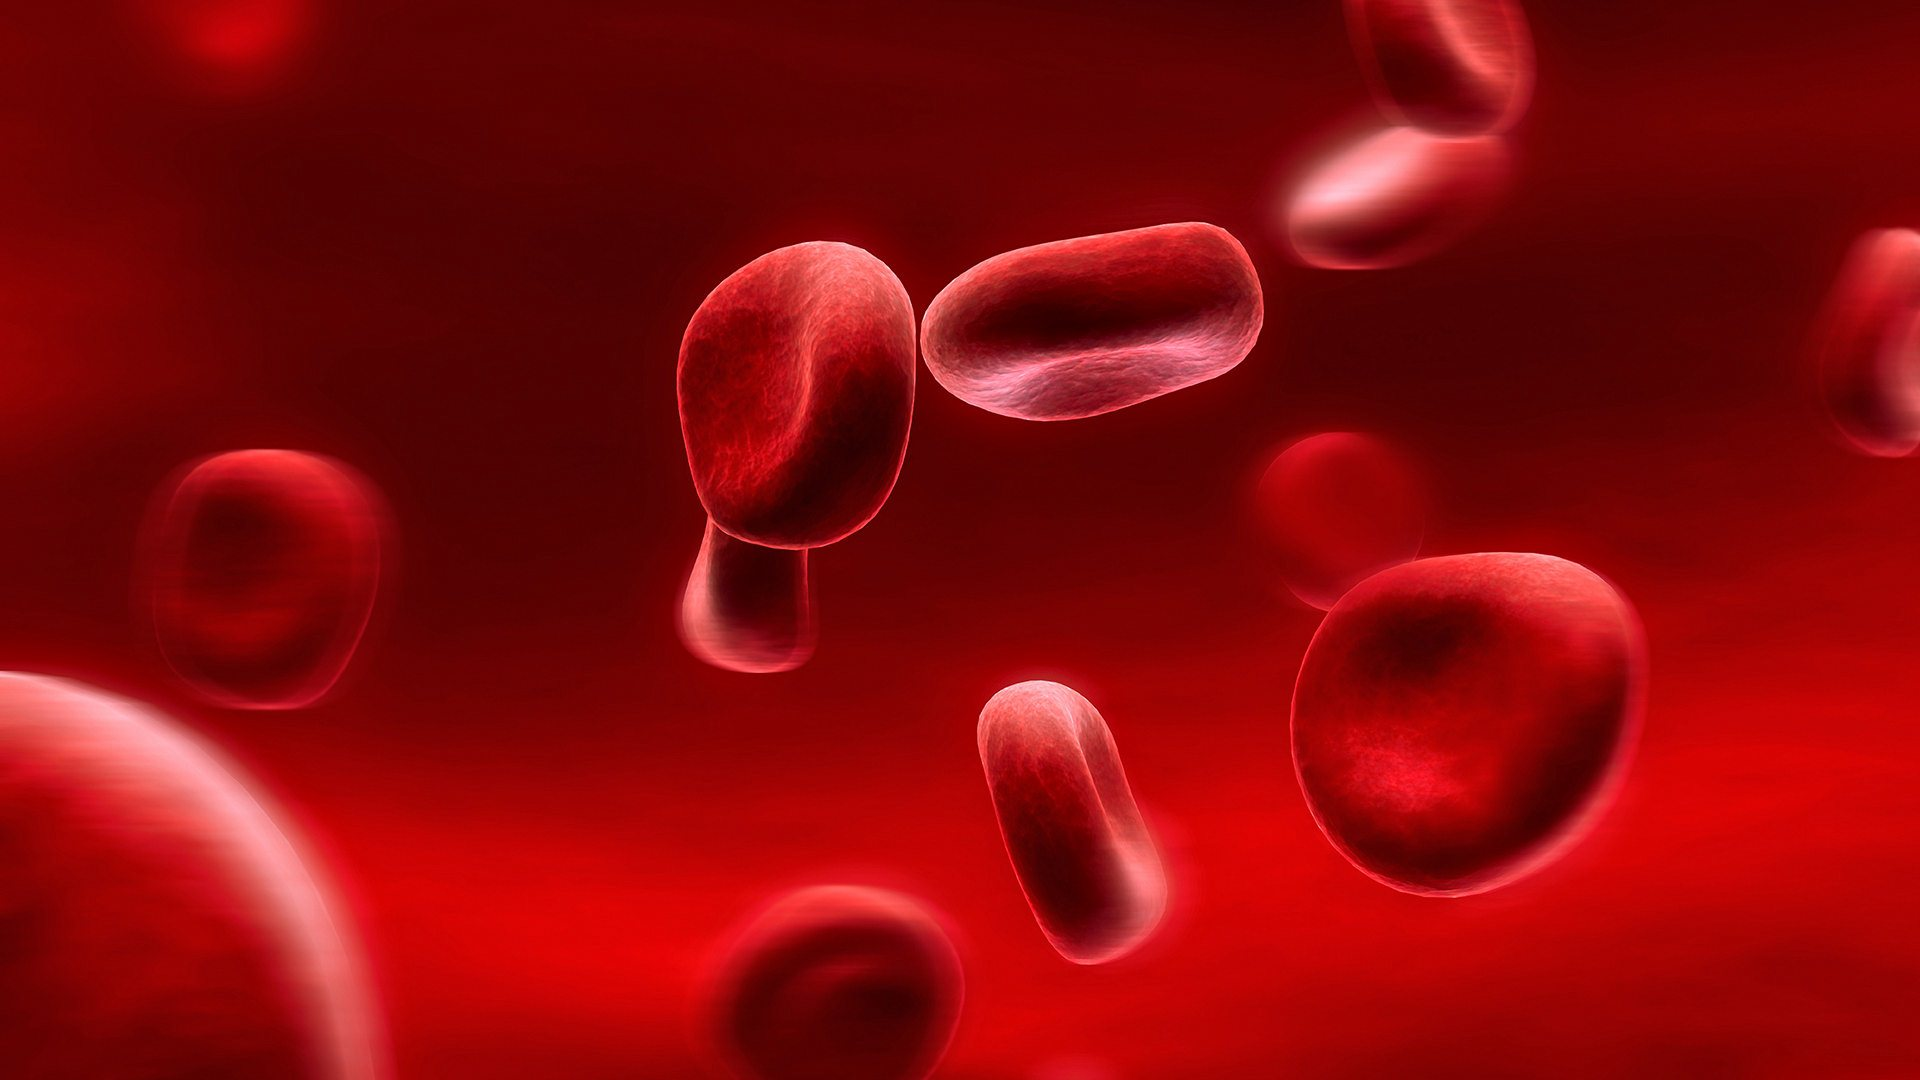 red blood cells wallpaper background